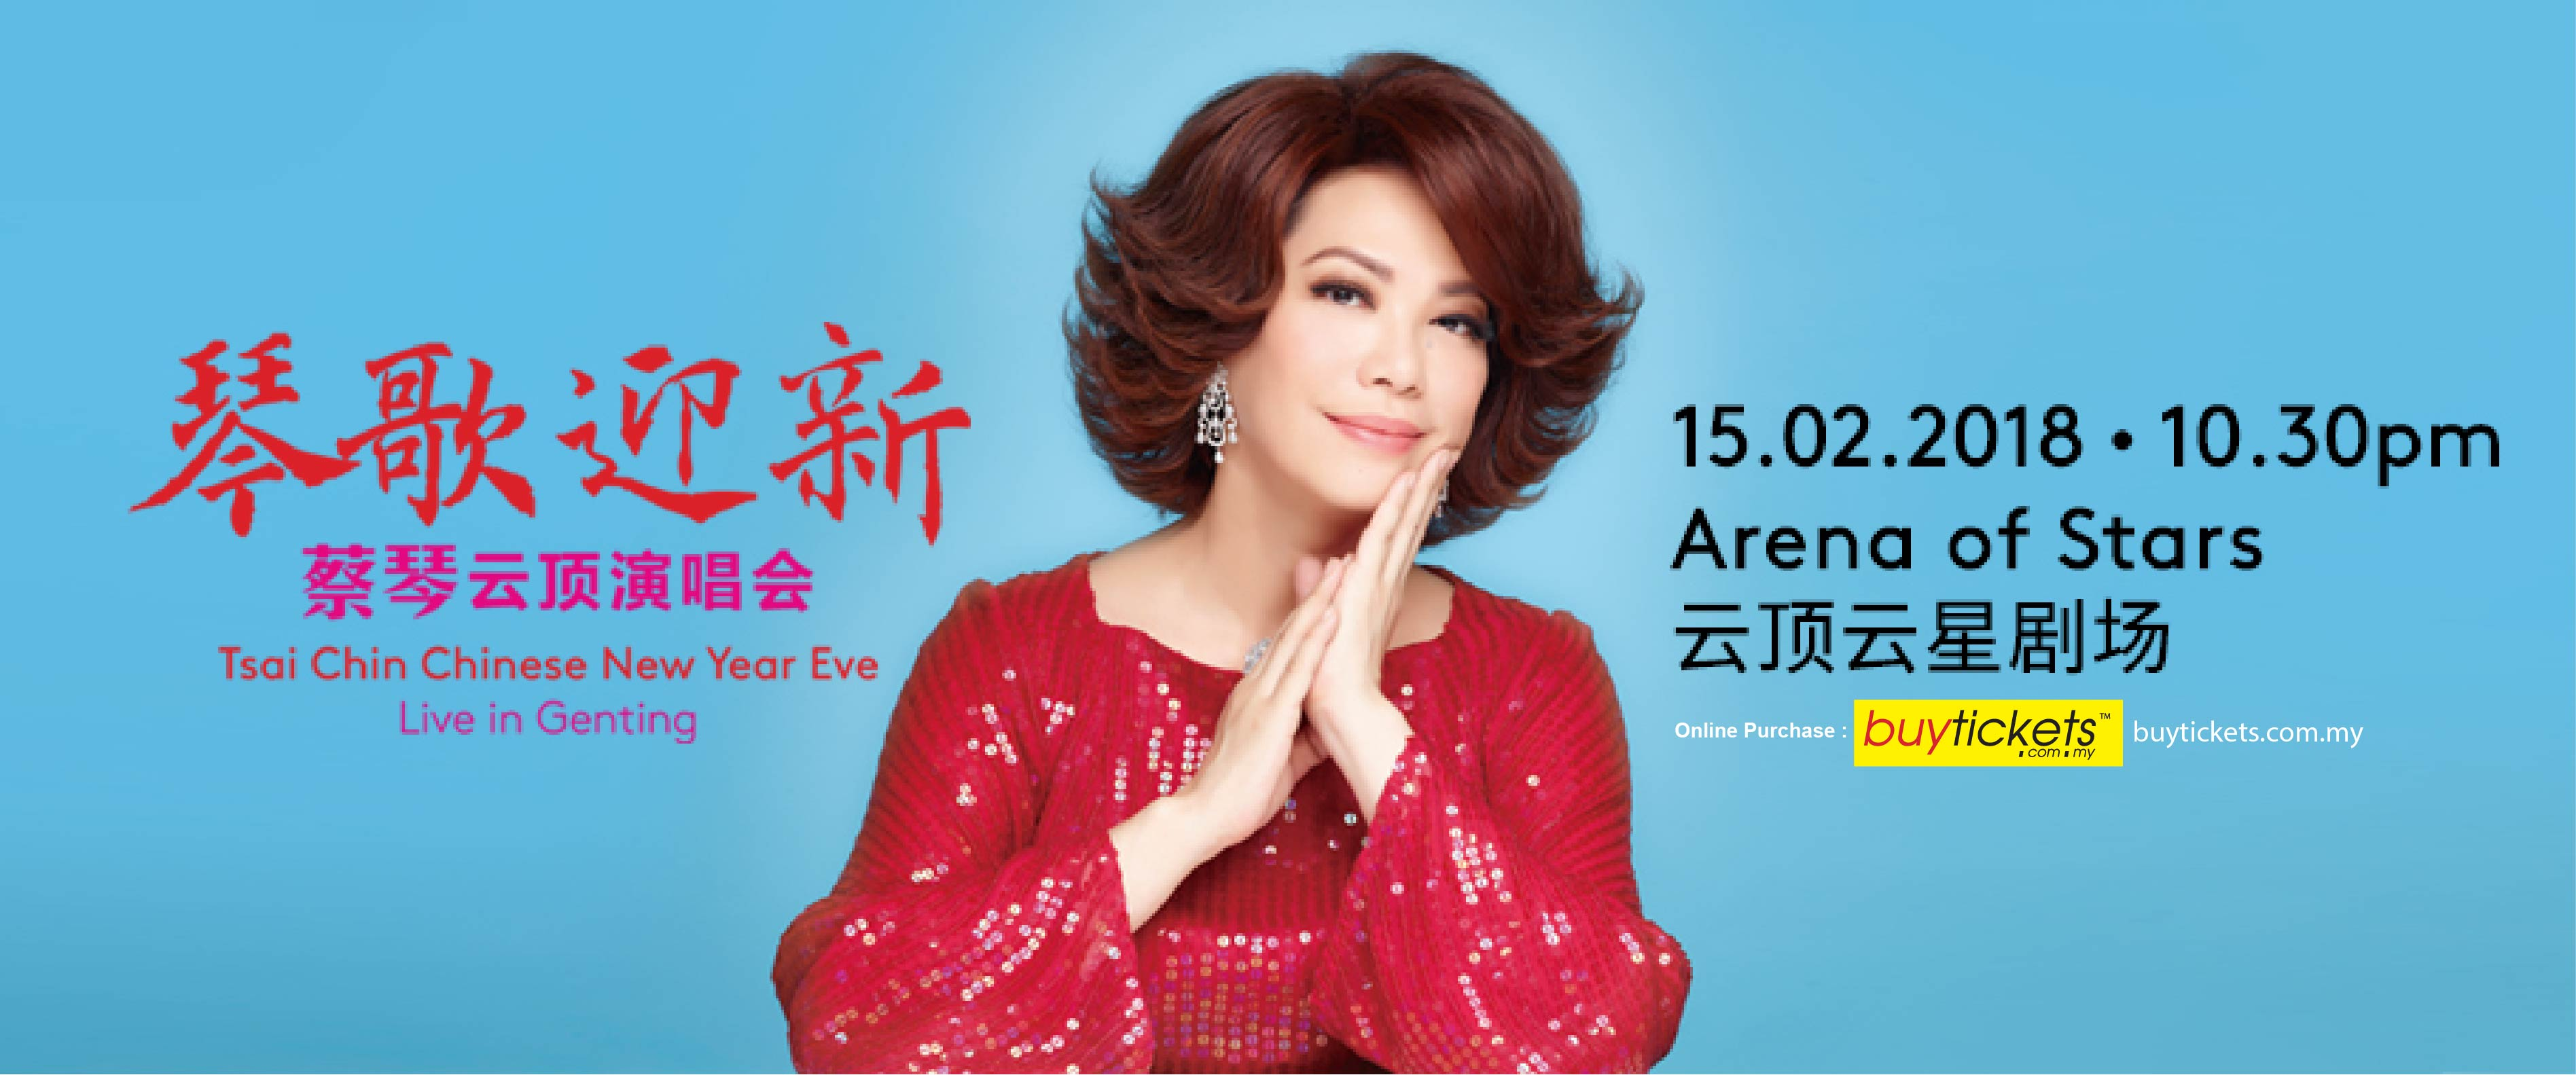 Tsai Chin Chinese New Year Eve Live in Genting